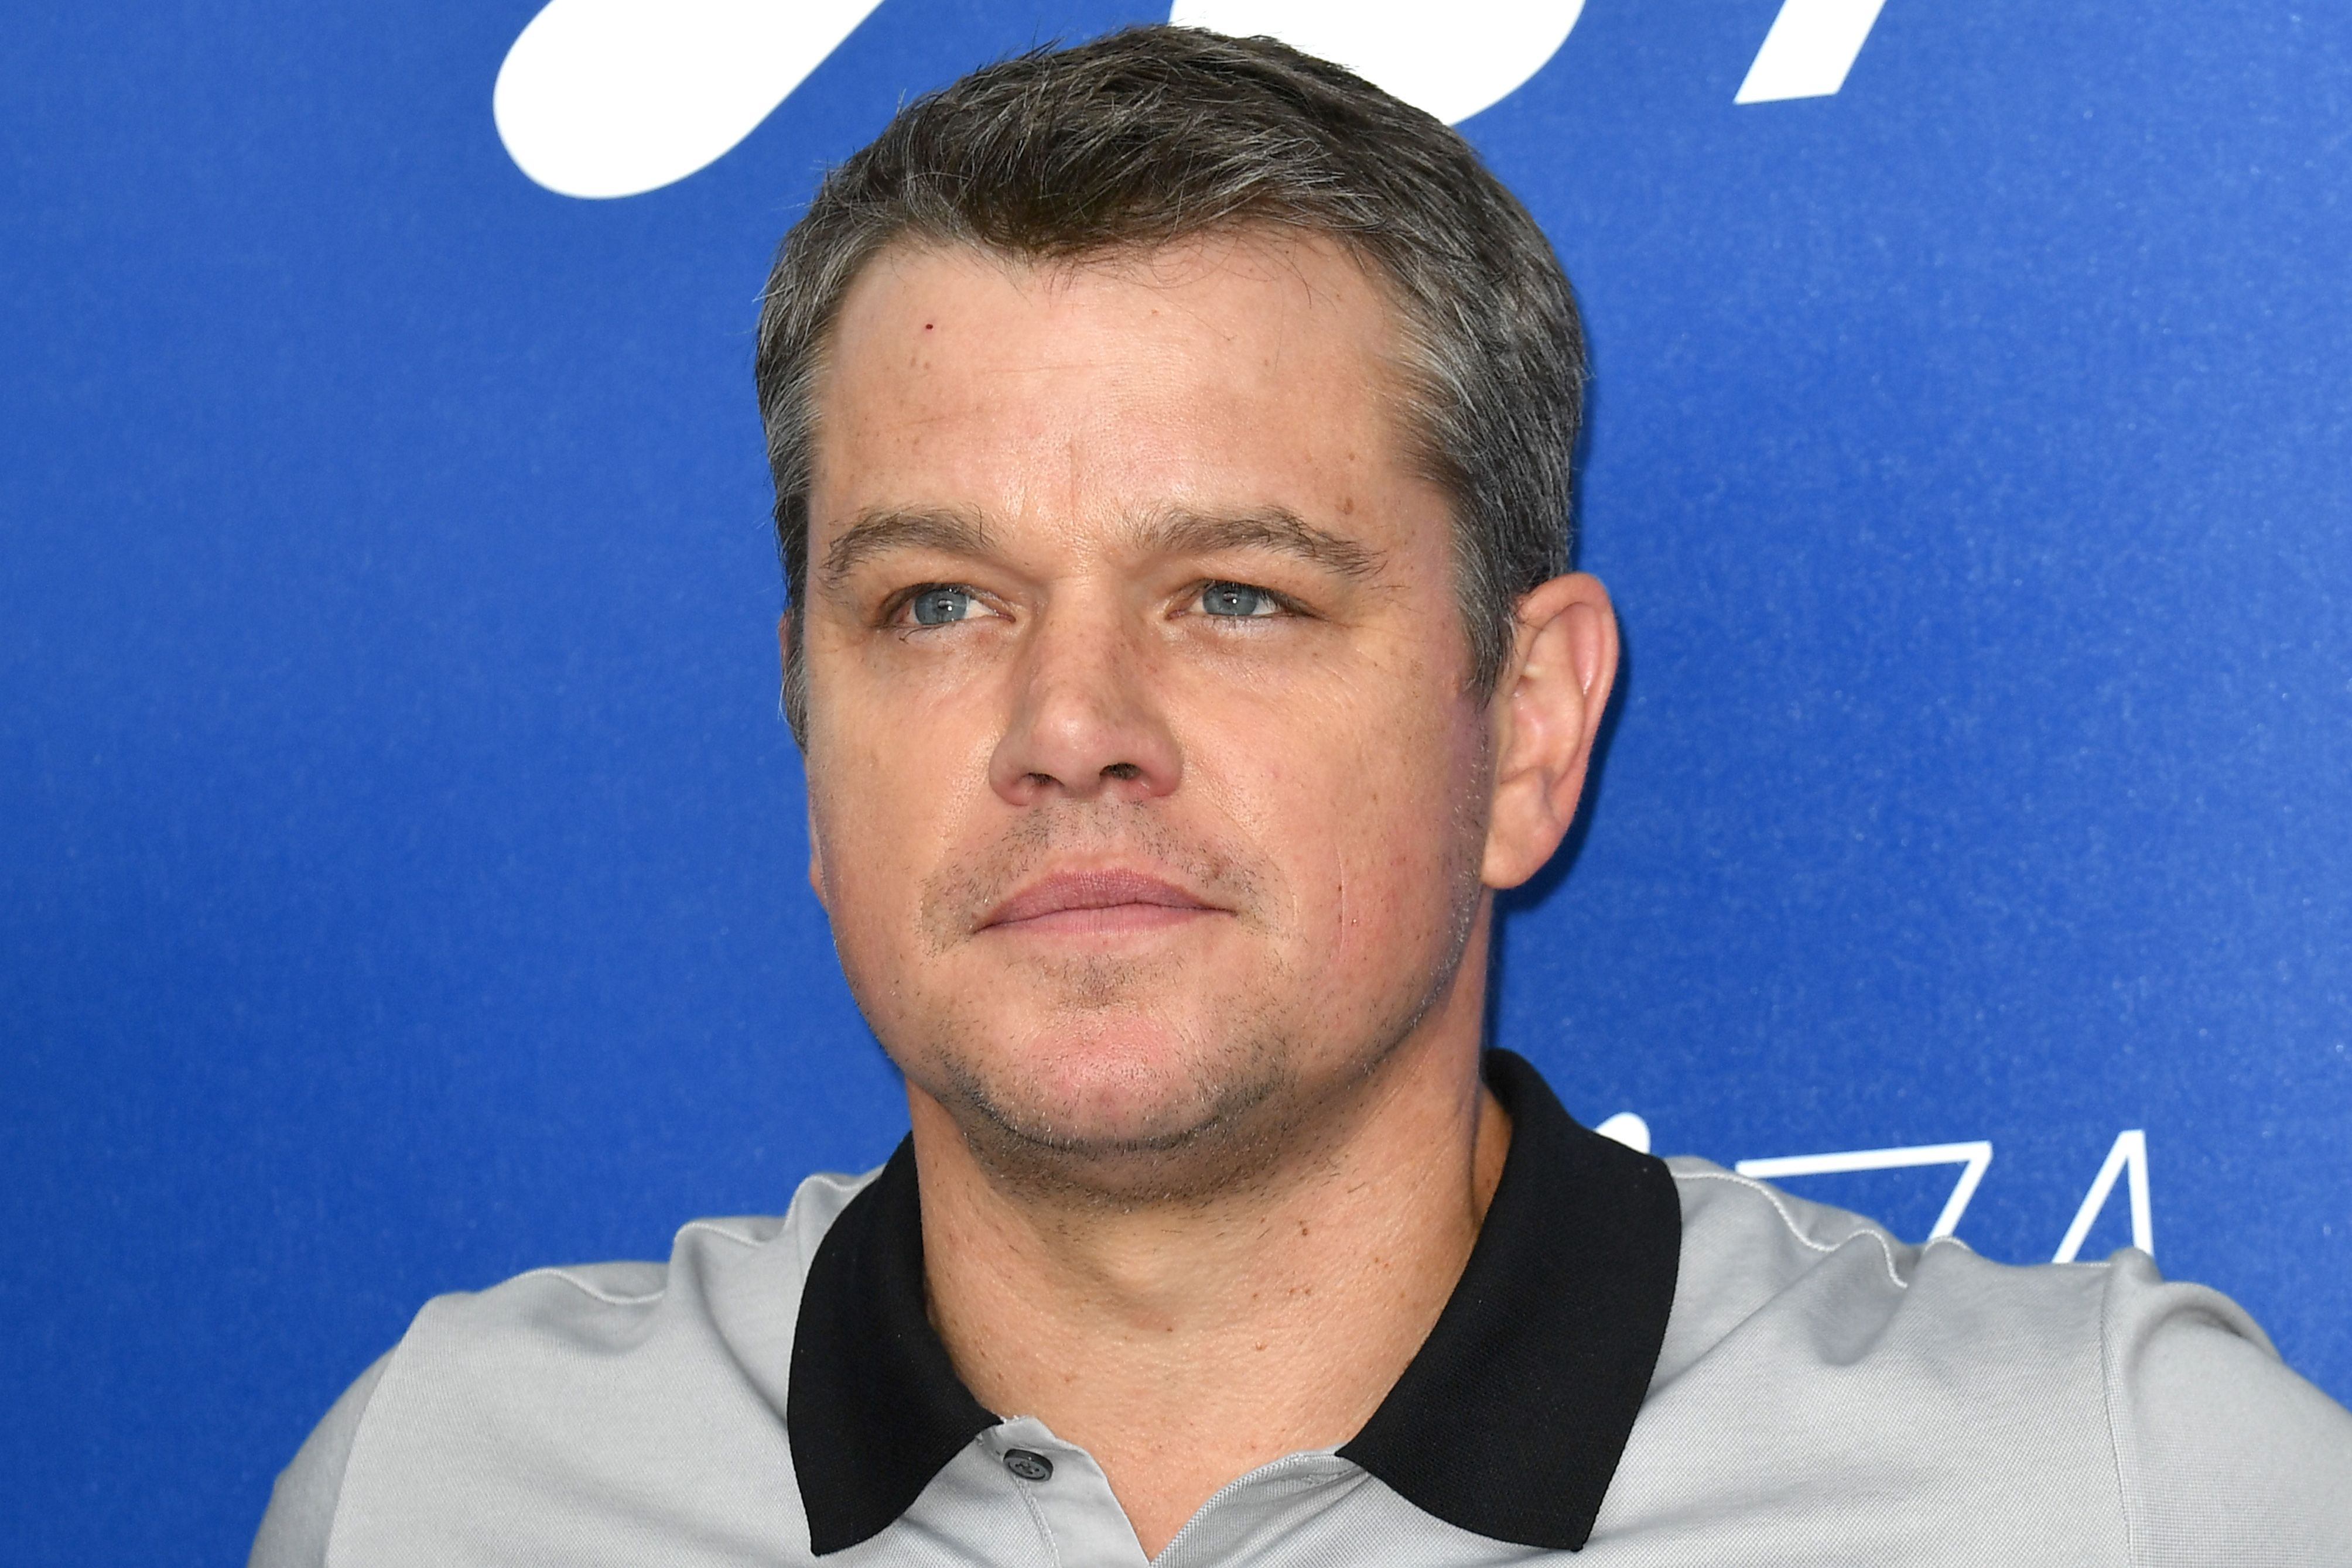 Matt Damon Lost Out on $250 Million by Turning Down 'Avatar' Offer: 'That's Still Brutal'